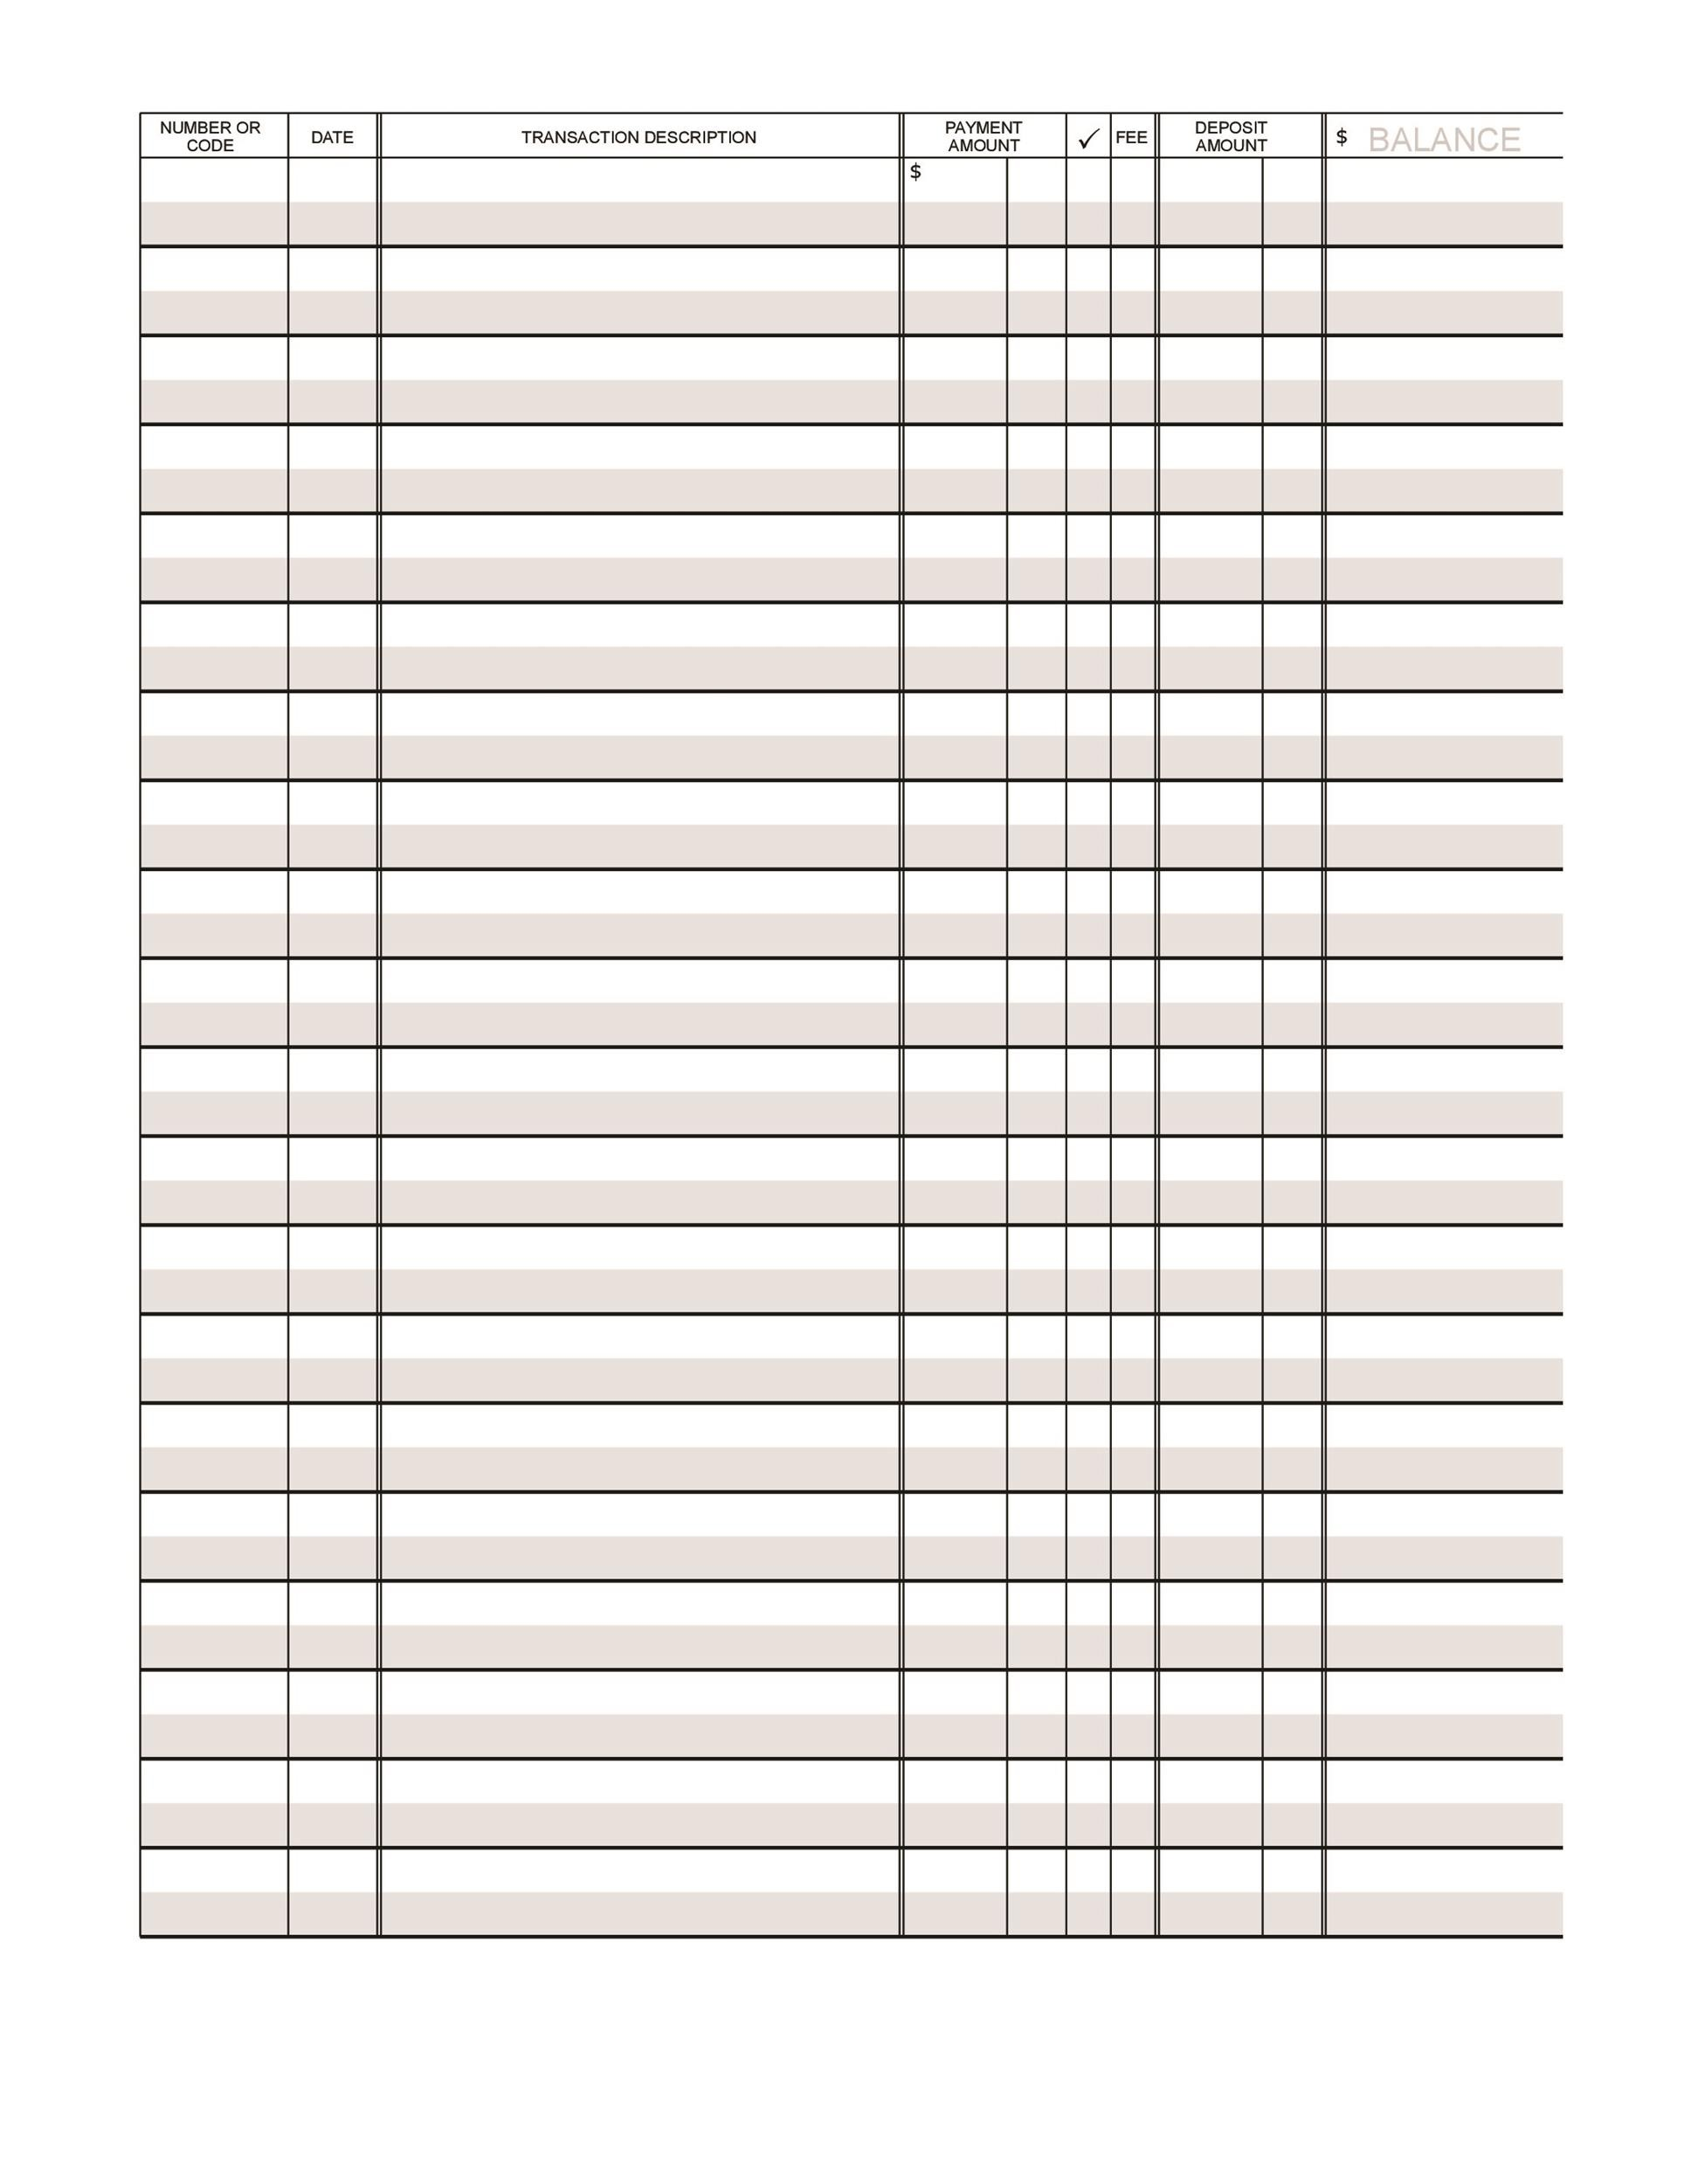 photograph regarding Printable Check Register Front and Back named 37 Checkbook Sign-up Templates [100% Absolutely free, Printable] ᐅ